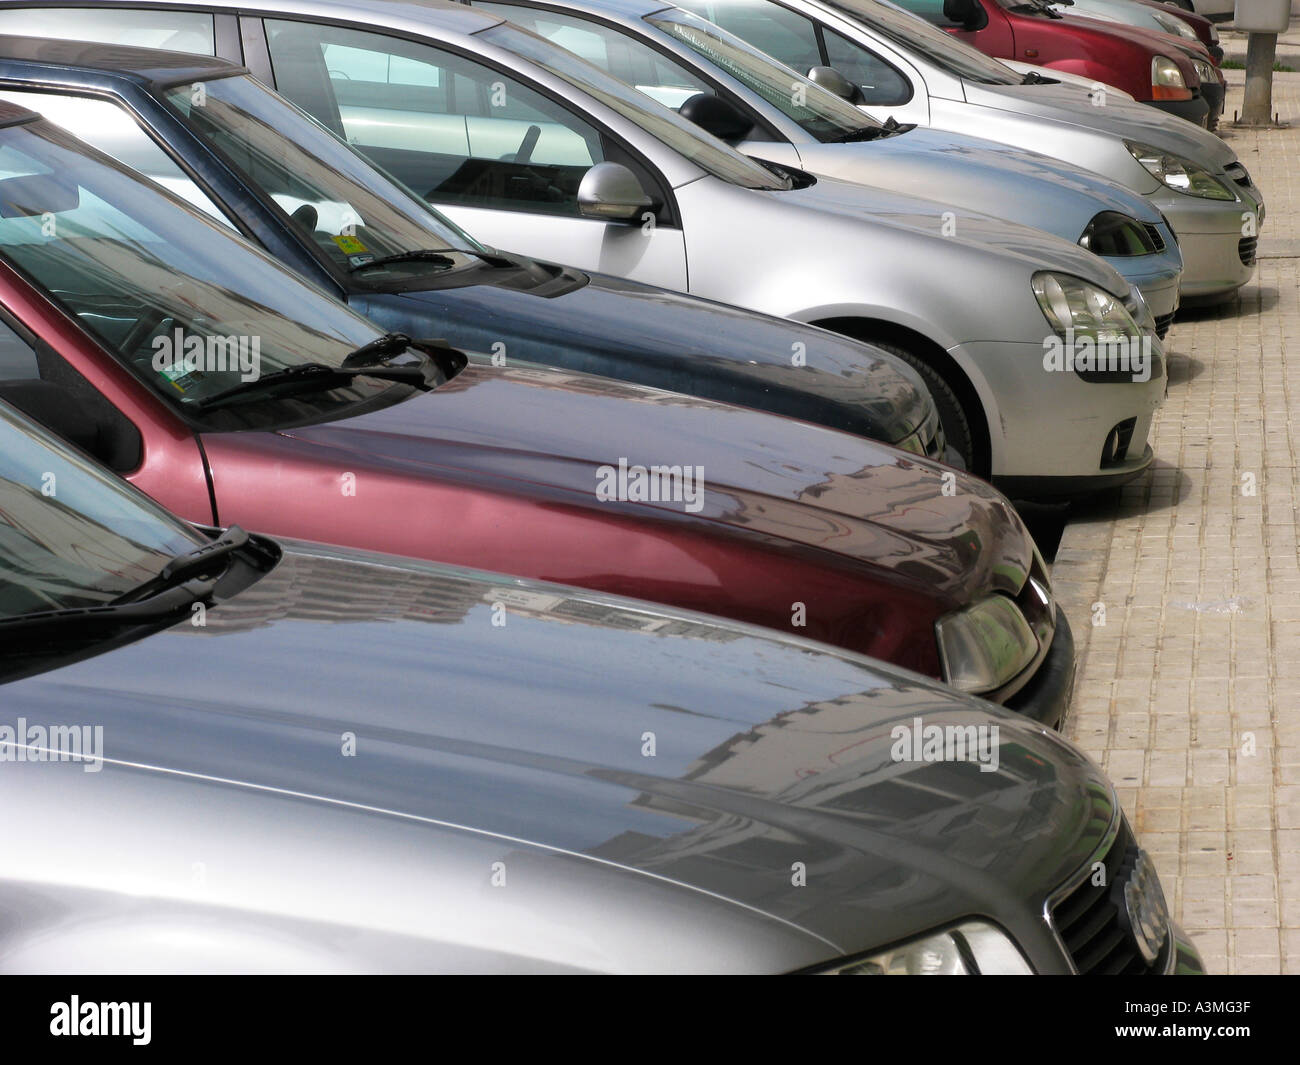 Line of parked cars in city street - Stock Image